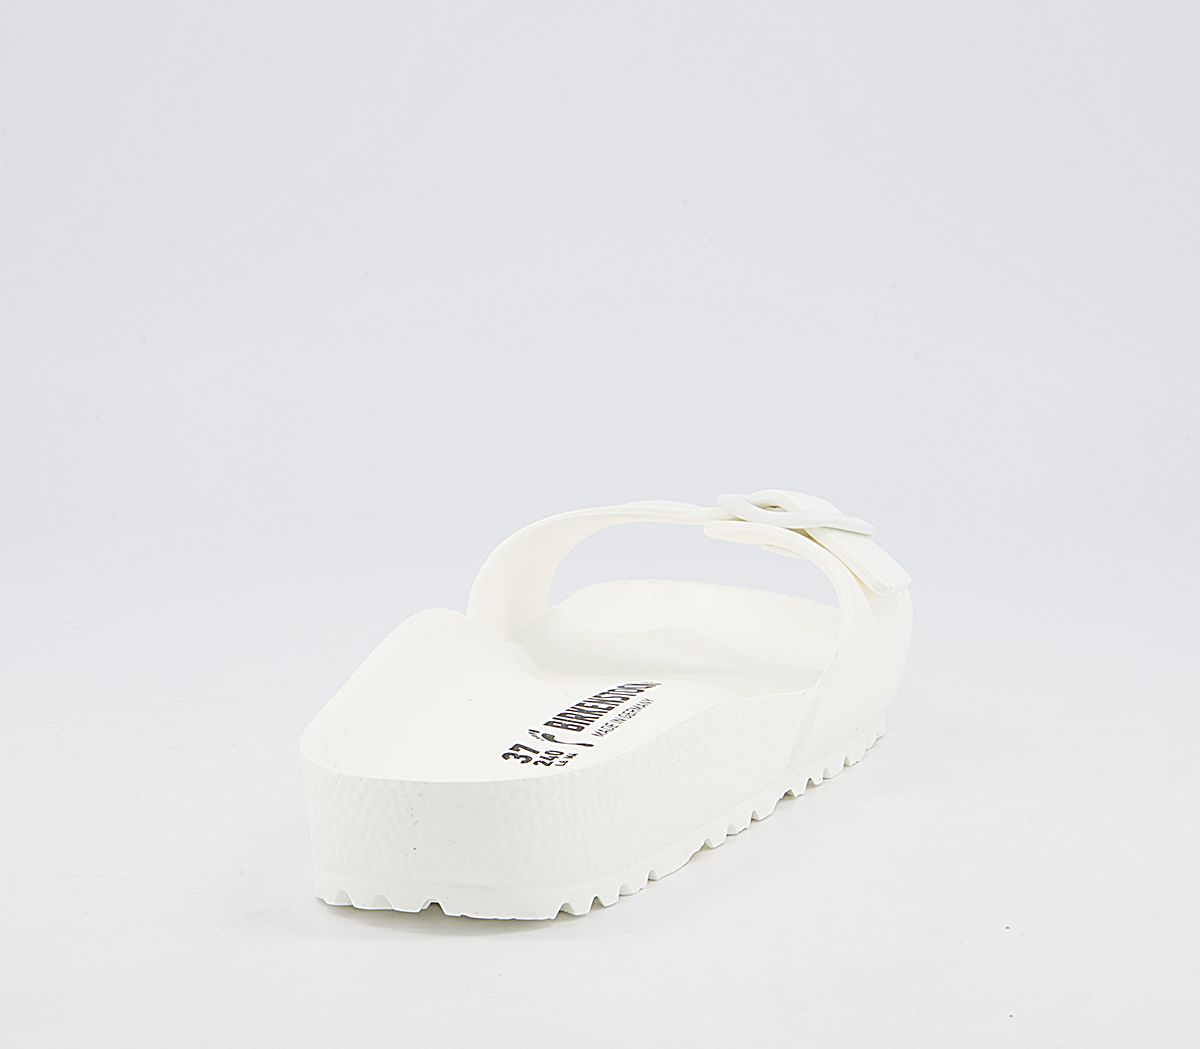 bf5485b9ac7b Birkenstock Madrid 1 Bar Mule White Eva - Sandals